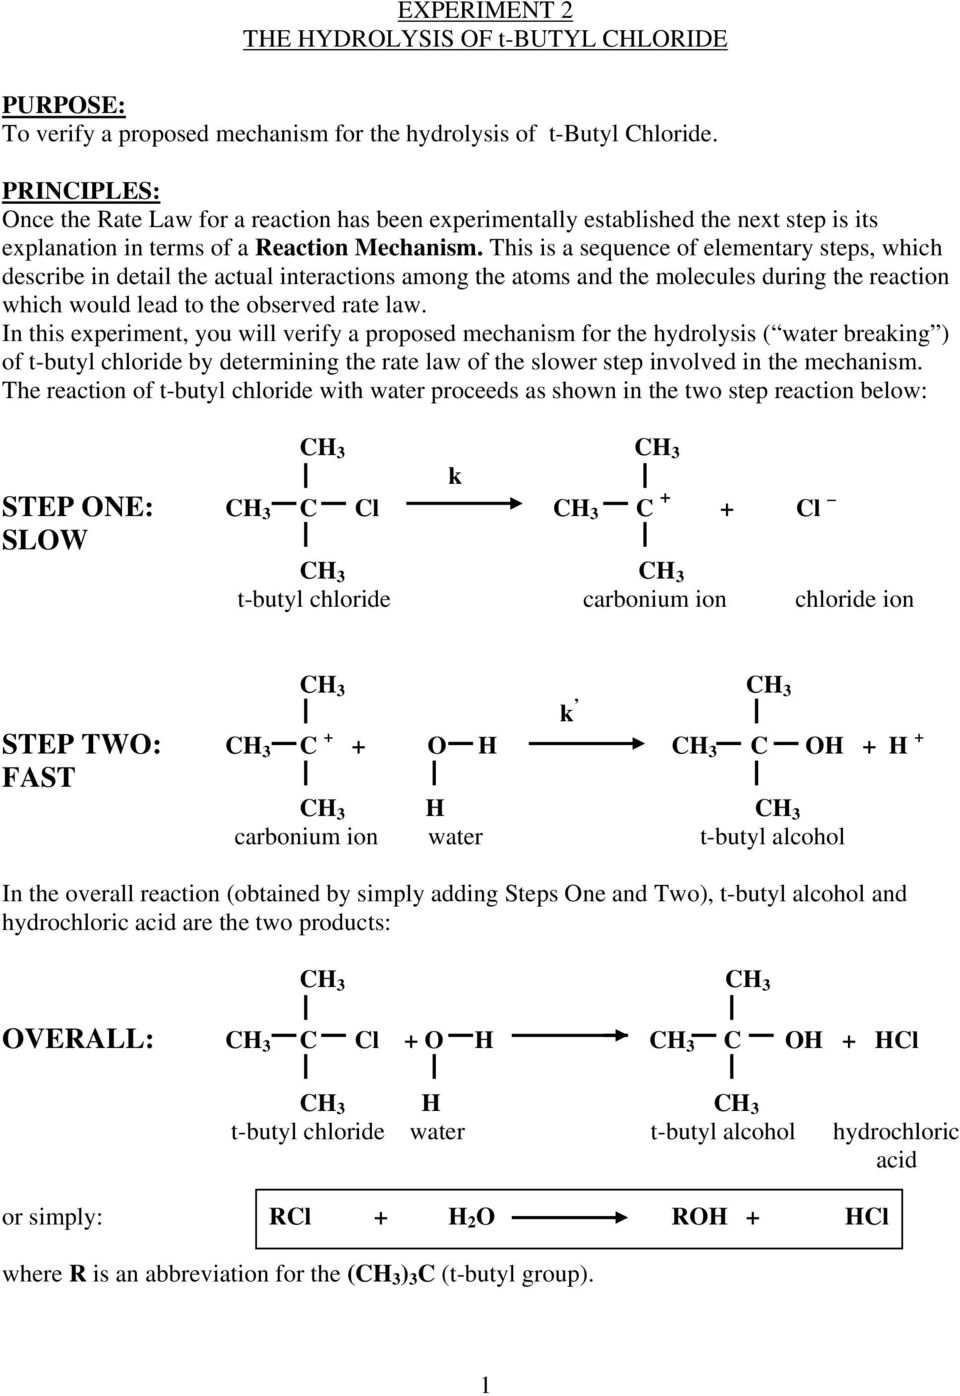 This is a sequence of elementary steps, which describe in detail the actual interactions among the atoms and the molecules during the reaction which would lead to the observed rate law.